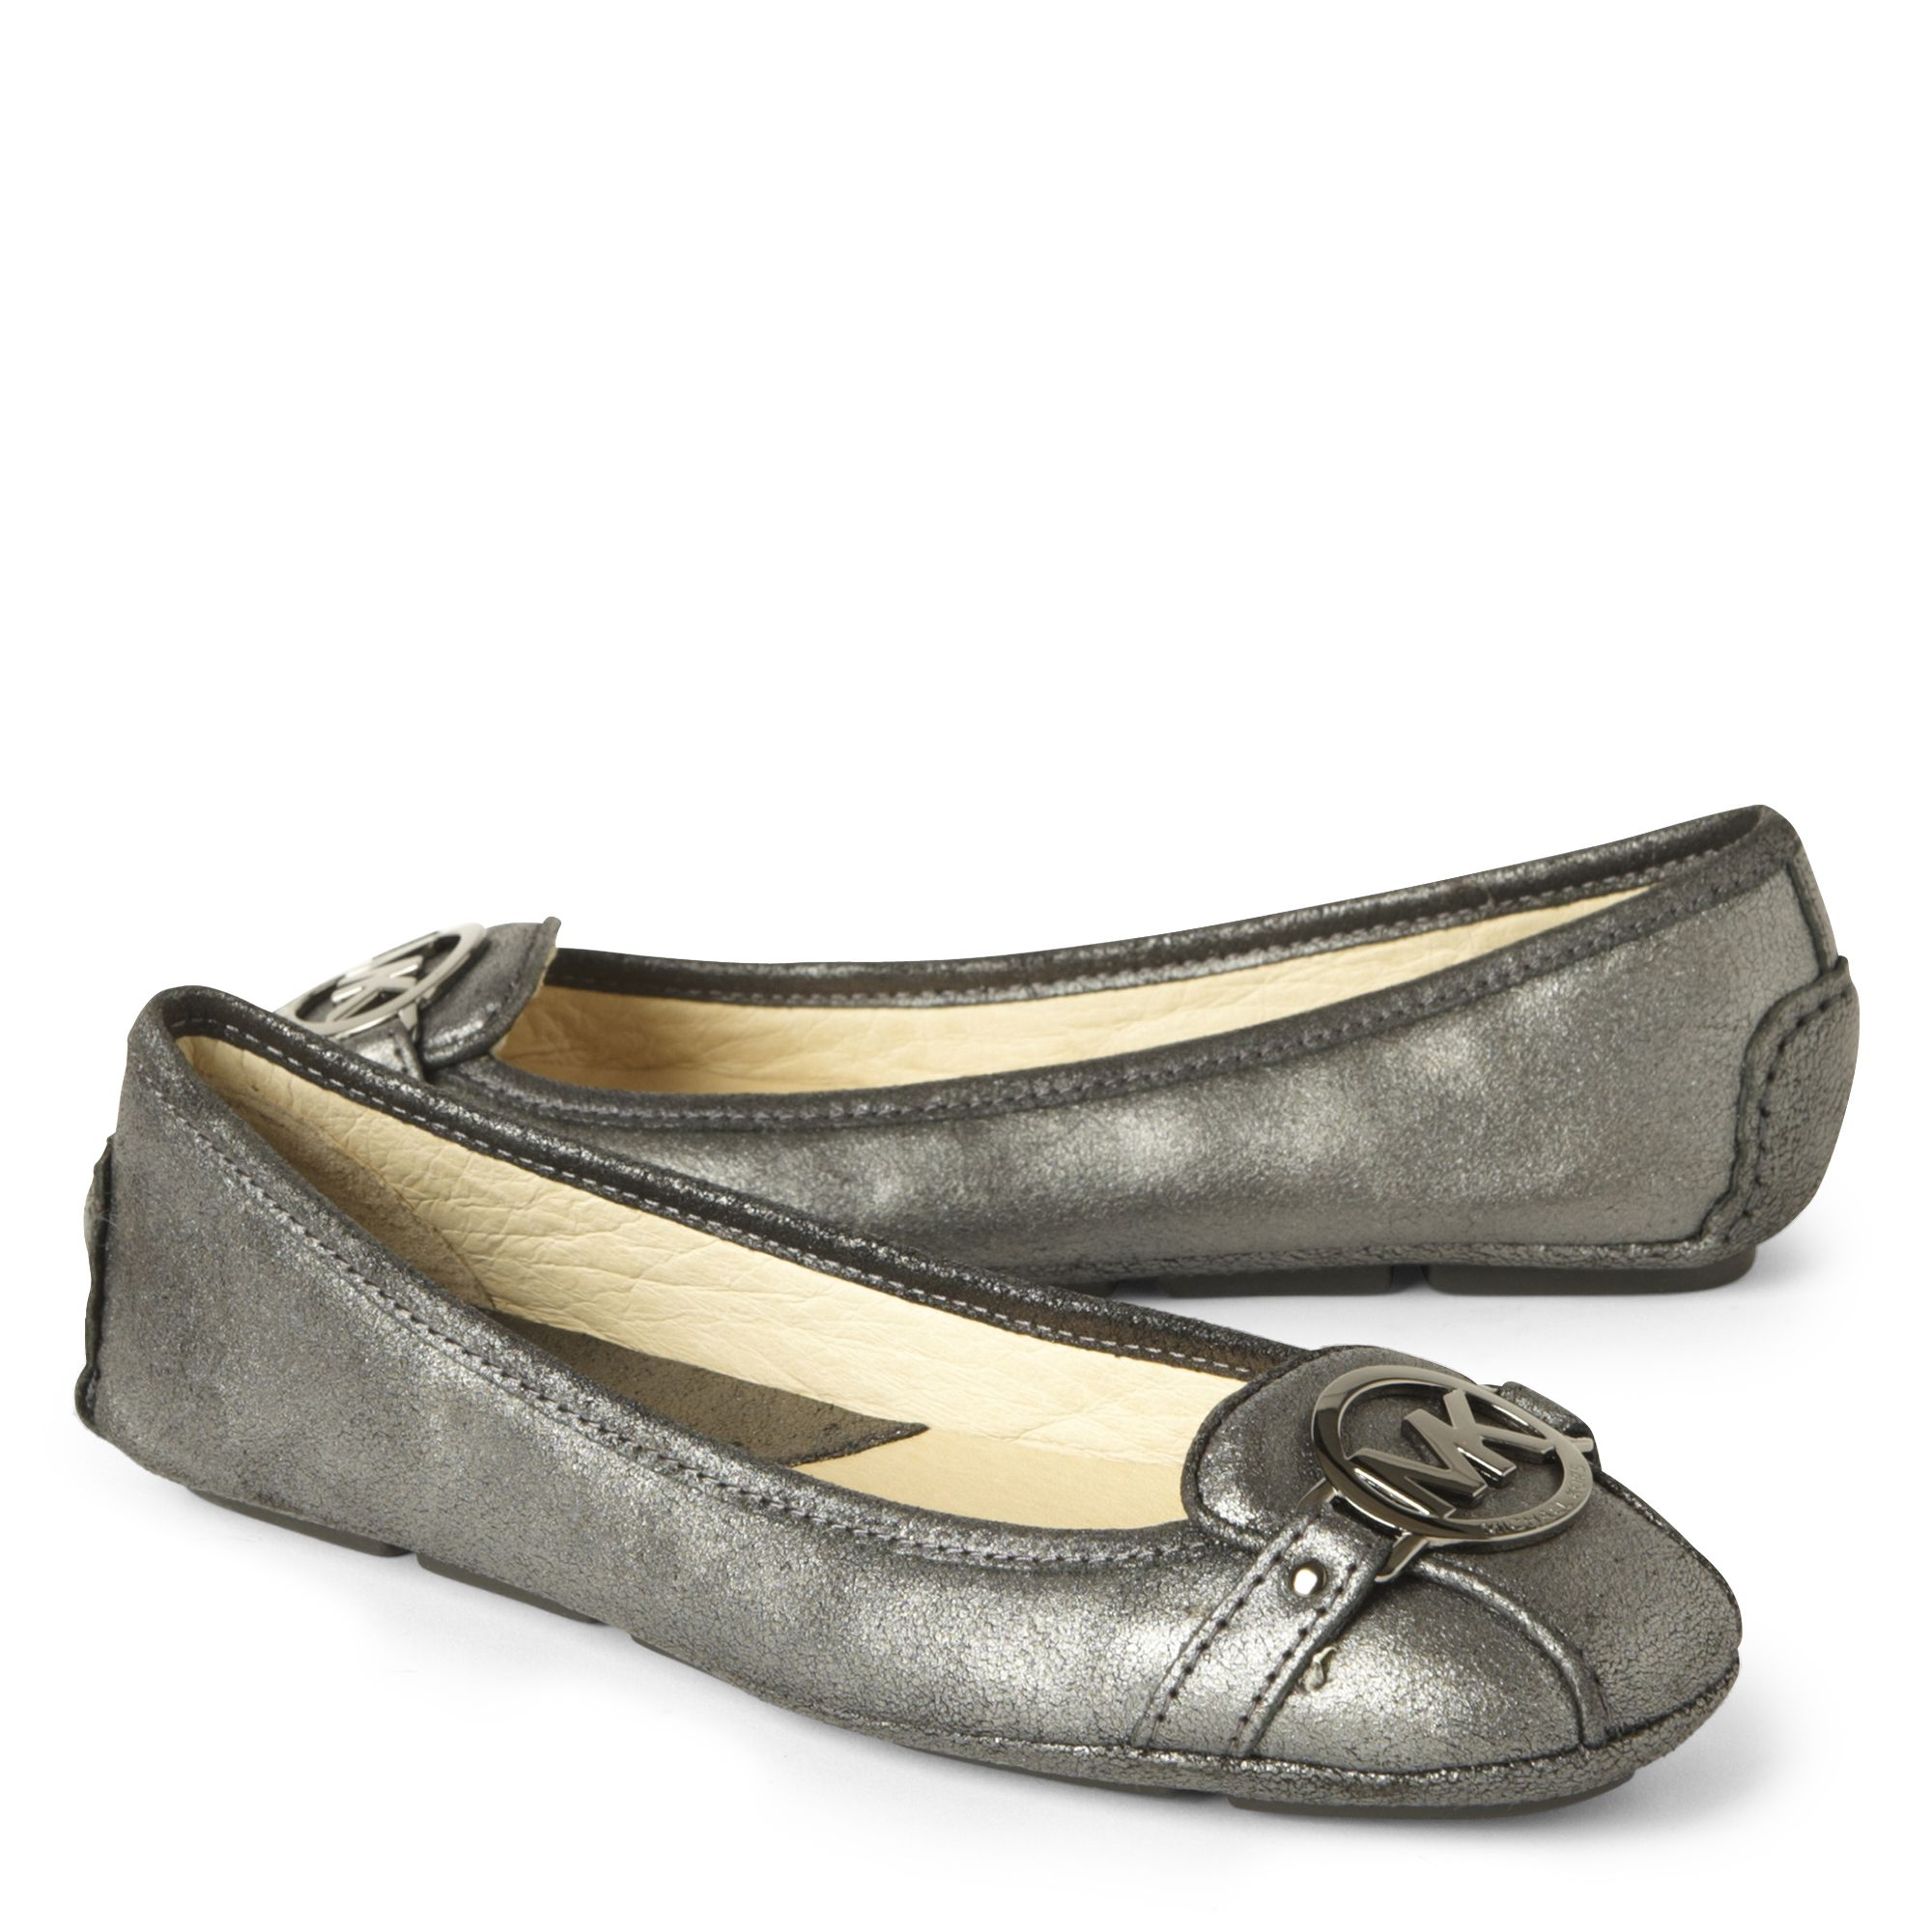 michael michael kors fulton moc ballerina pumps in silver gunmetal lyst. Black Bedroom Furniture Sets. Home Design Ideas